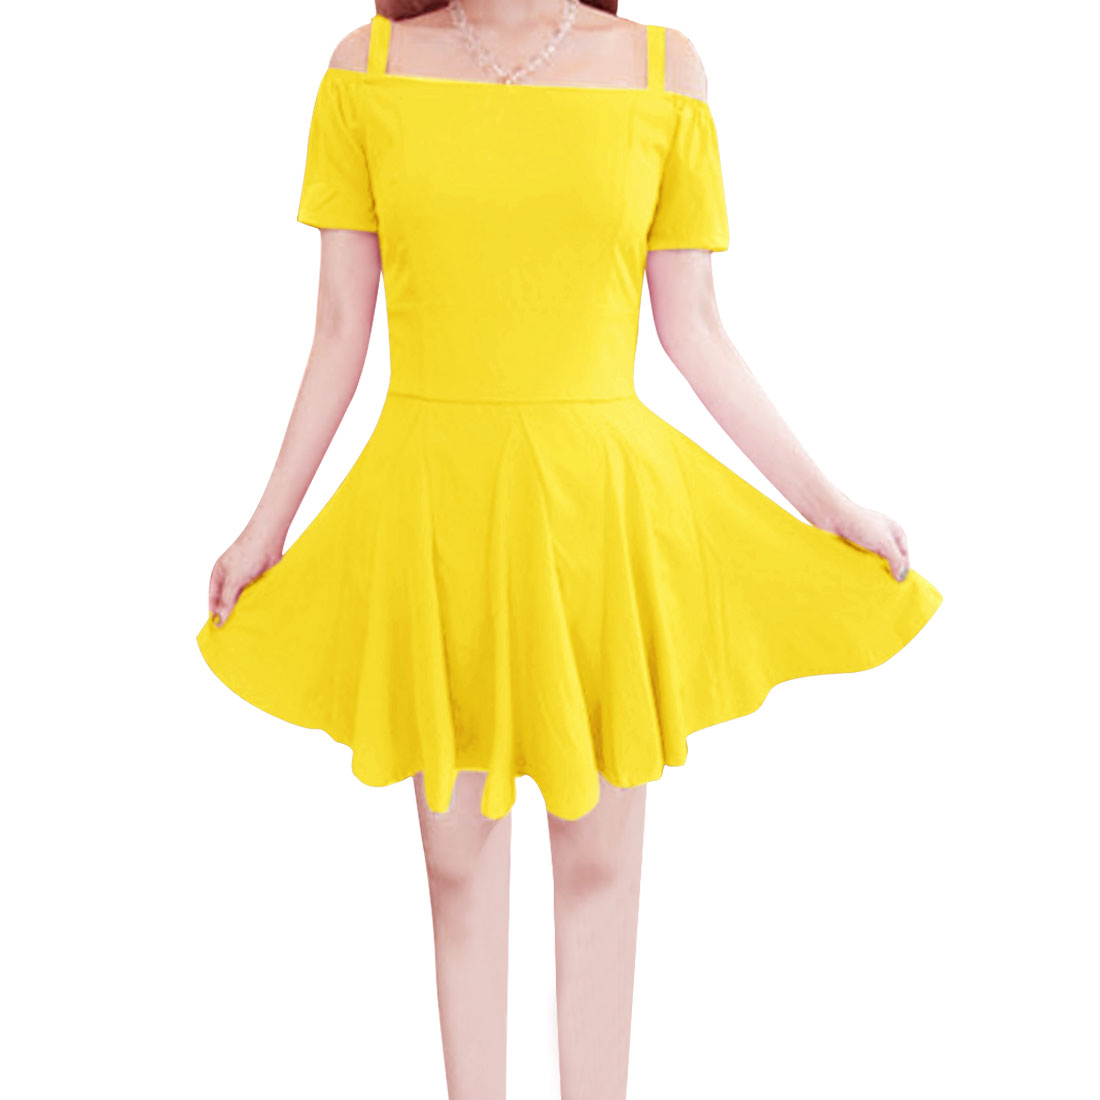 Ladies Spaghetti Strap Short Sleeve Stylish Dress Yellow XS